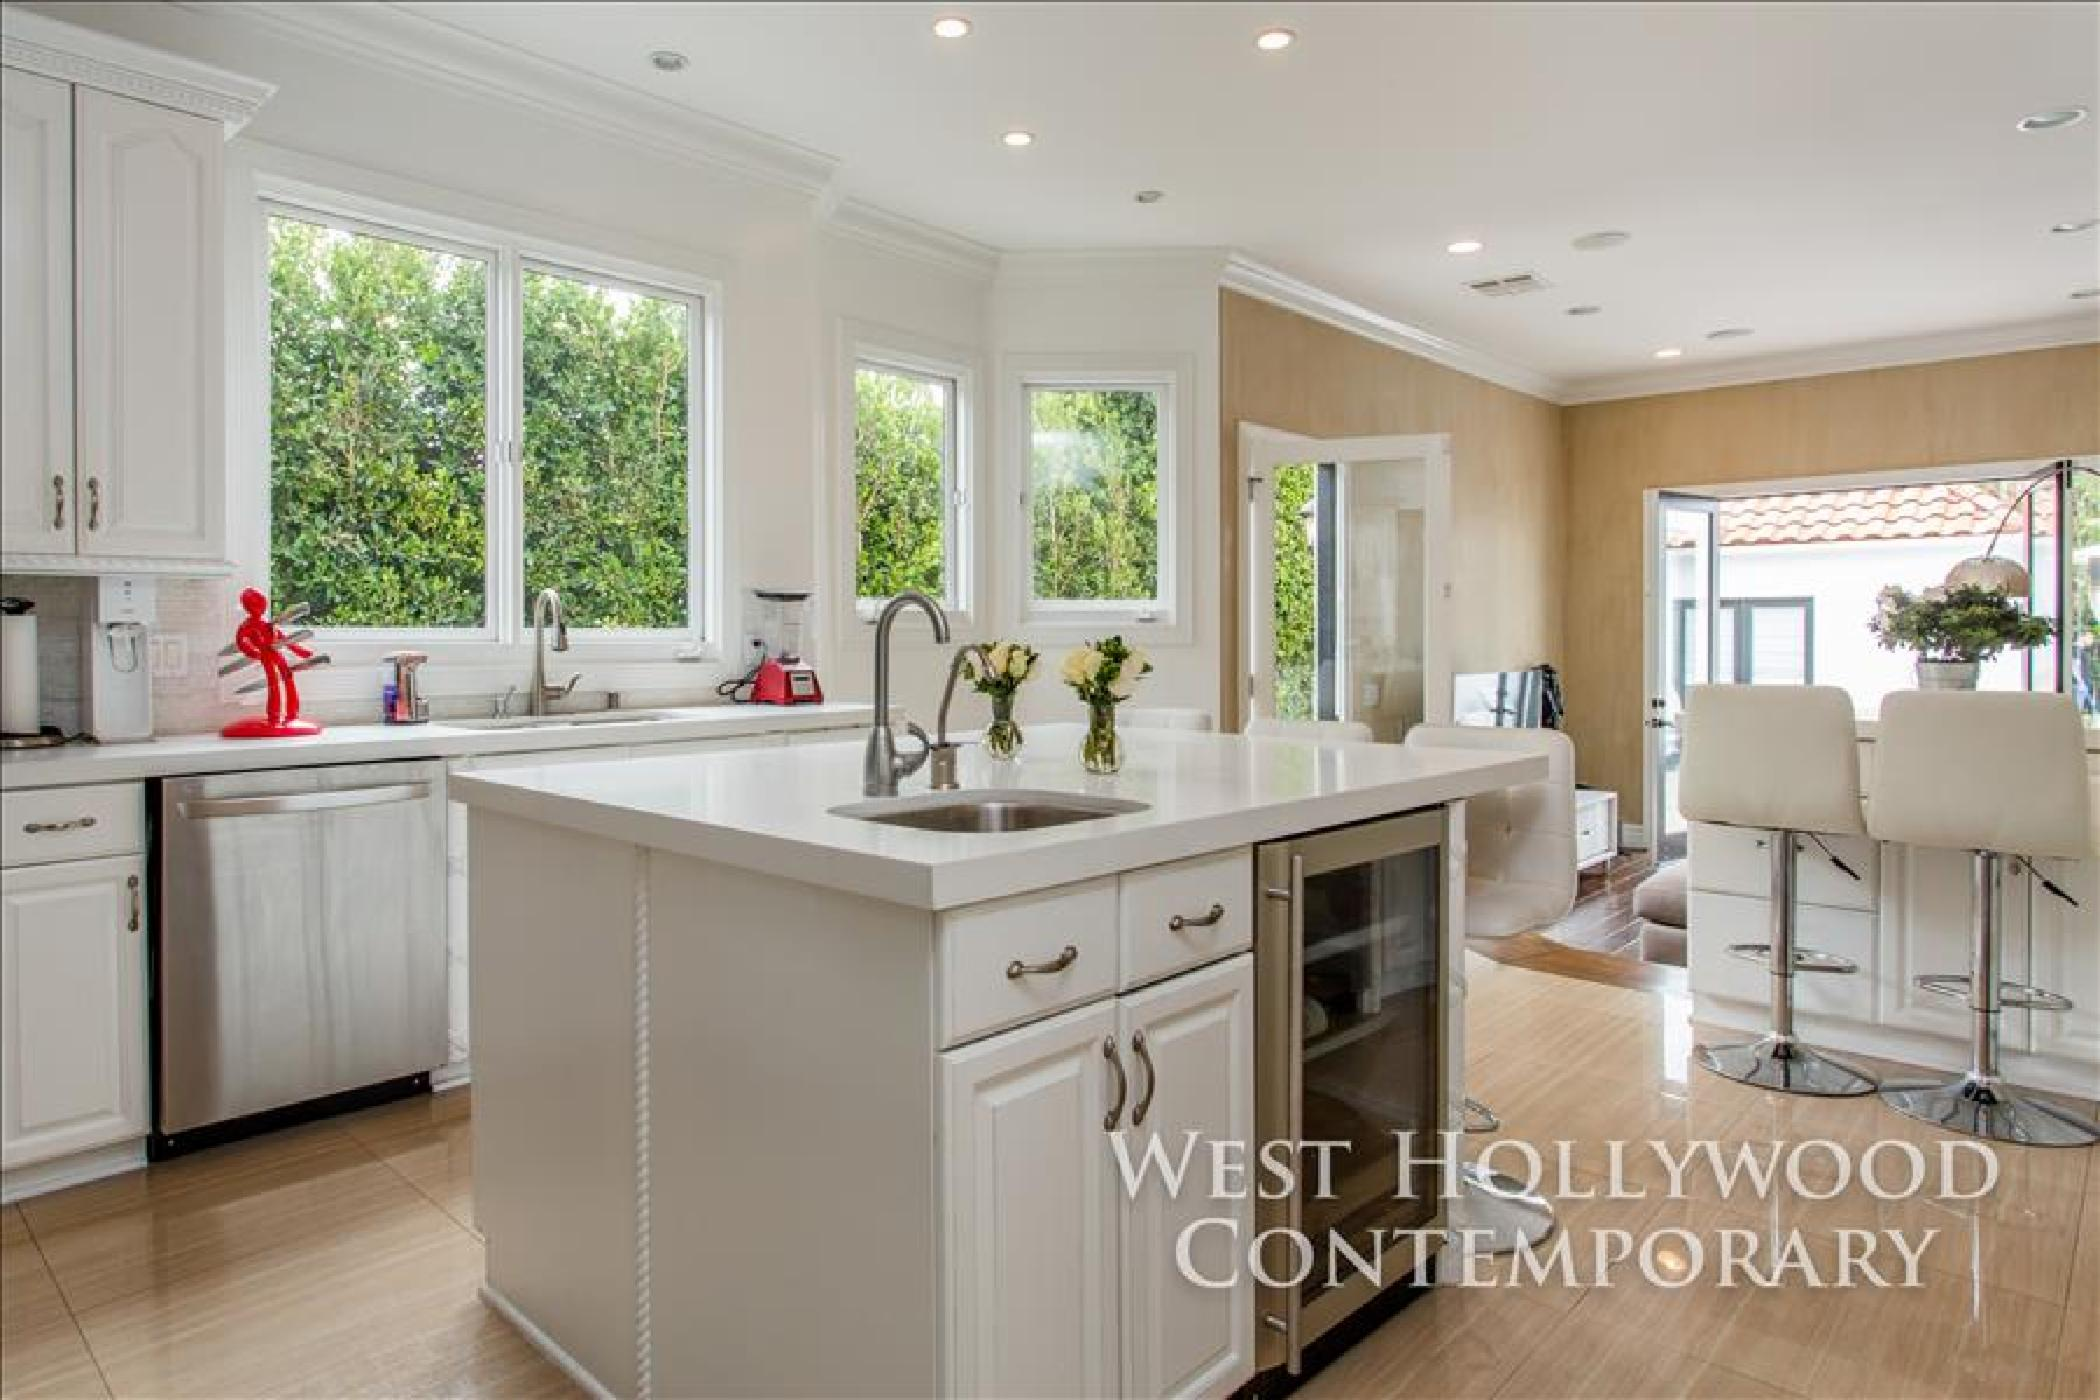 West Hollywood Contemporary